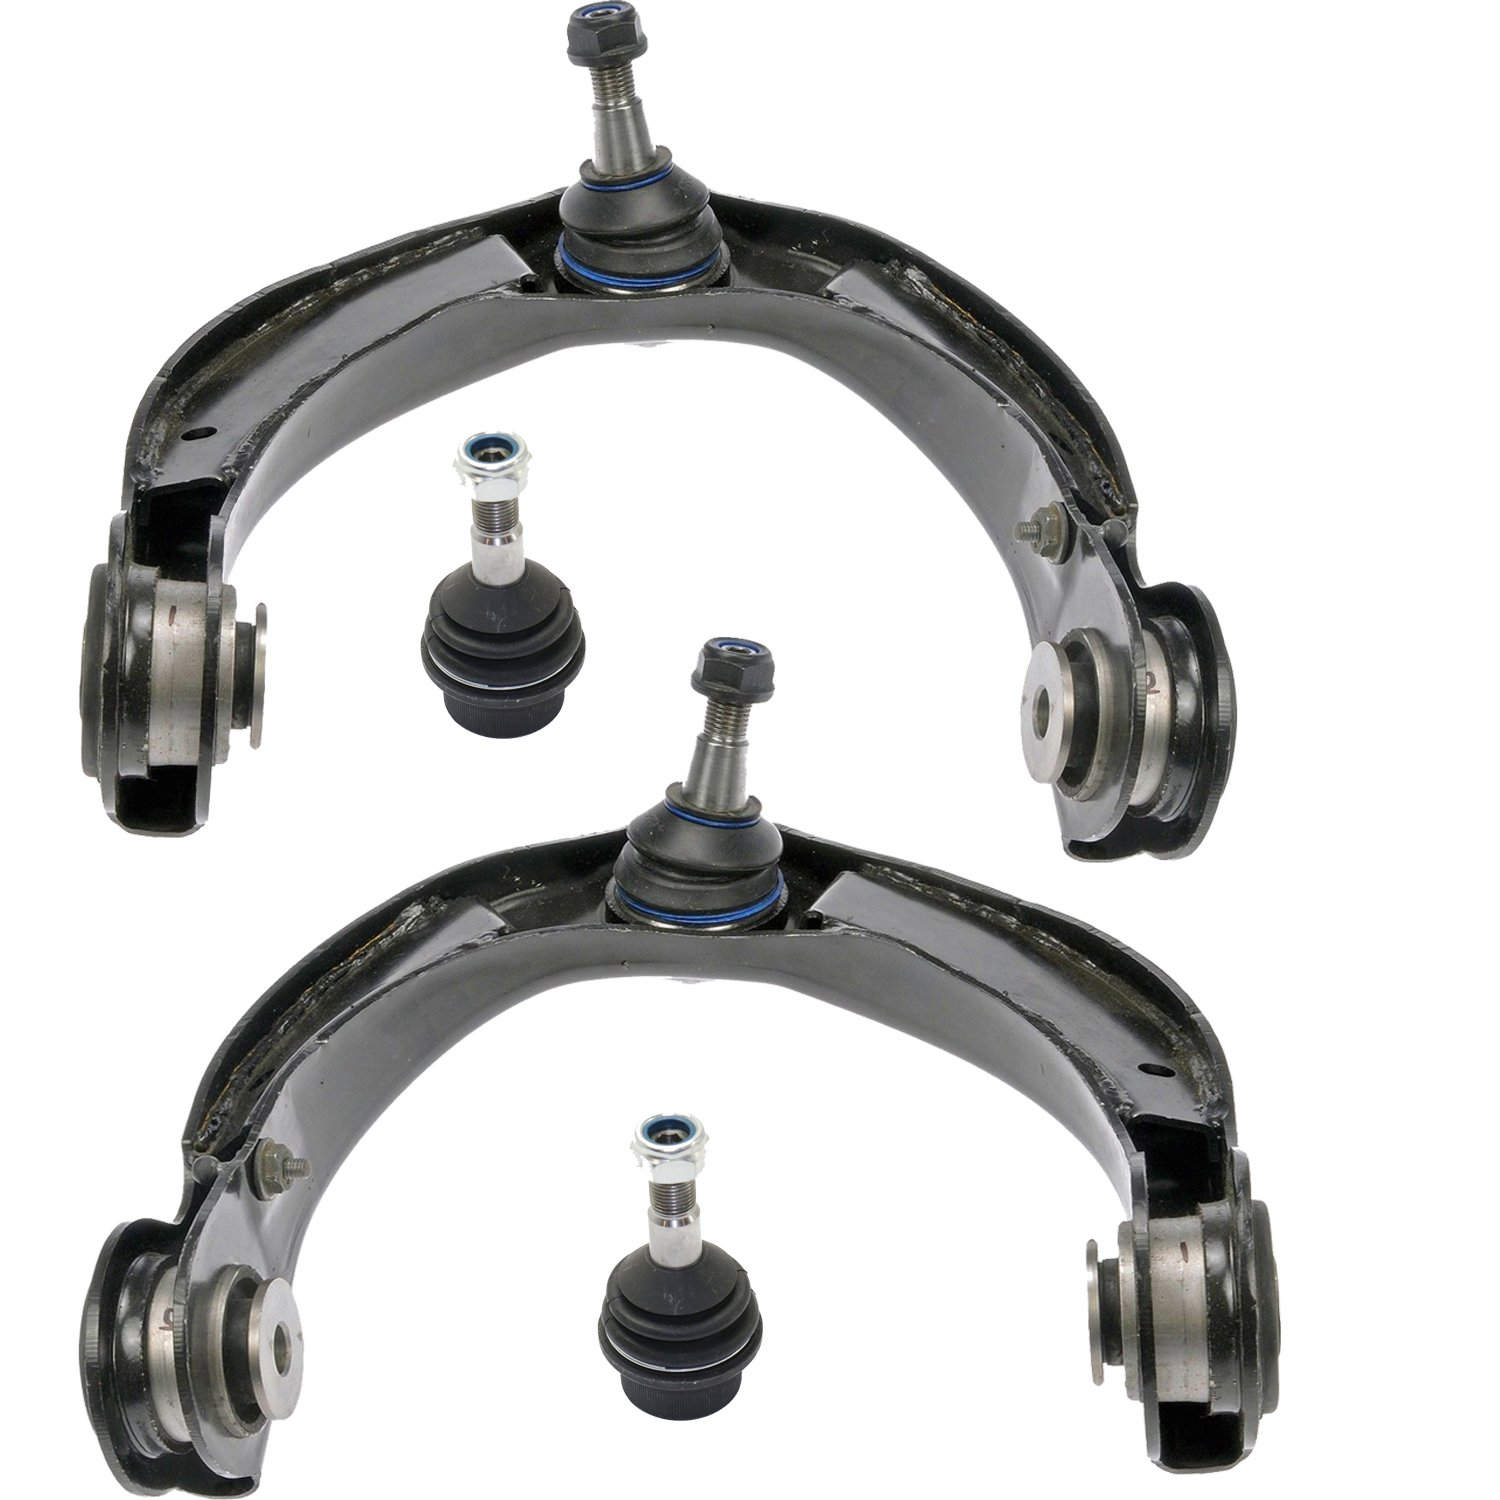 SCITOO 4pcs Suspension Kit 2 Upper Control Arm 2 Lower Ball Joint fit 2006-2010 Jeep Commander 2005-2010 Jeep Grand Cherokee K80629